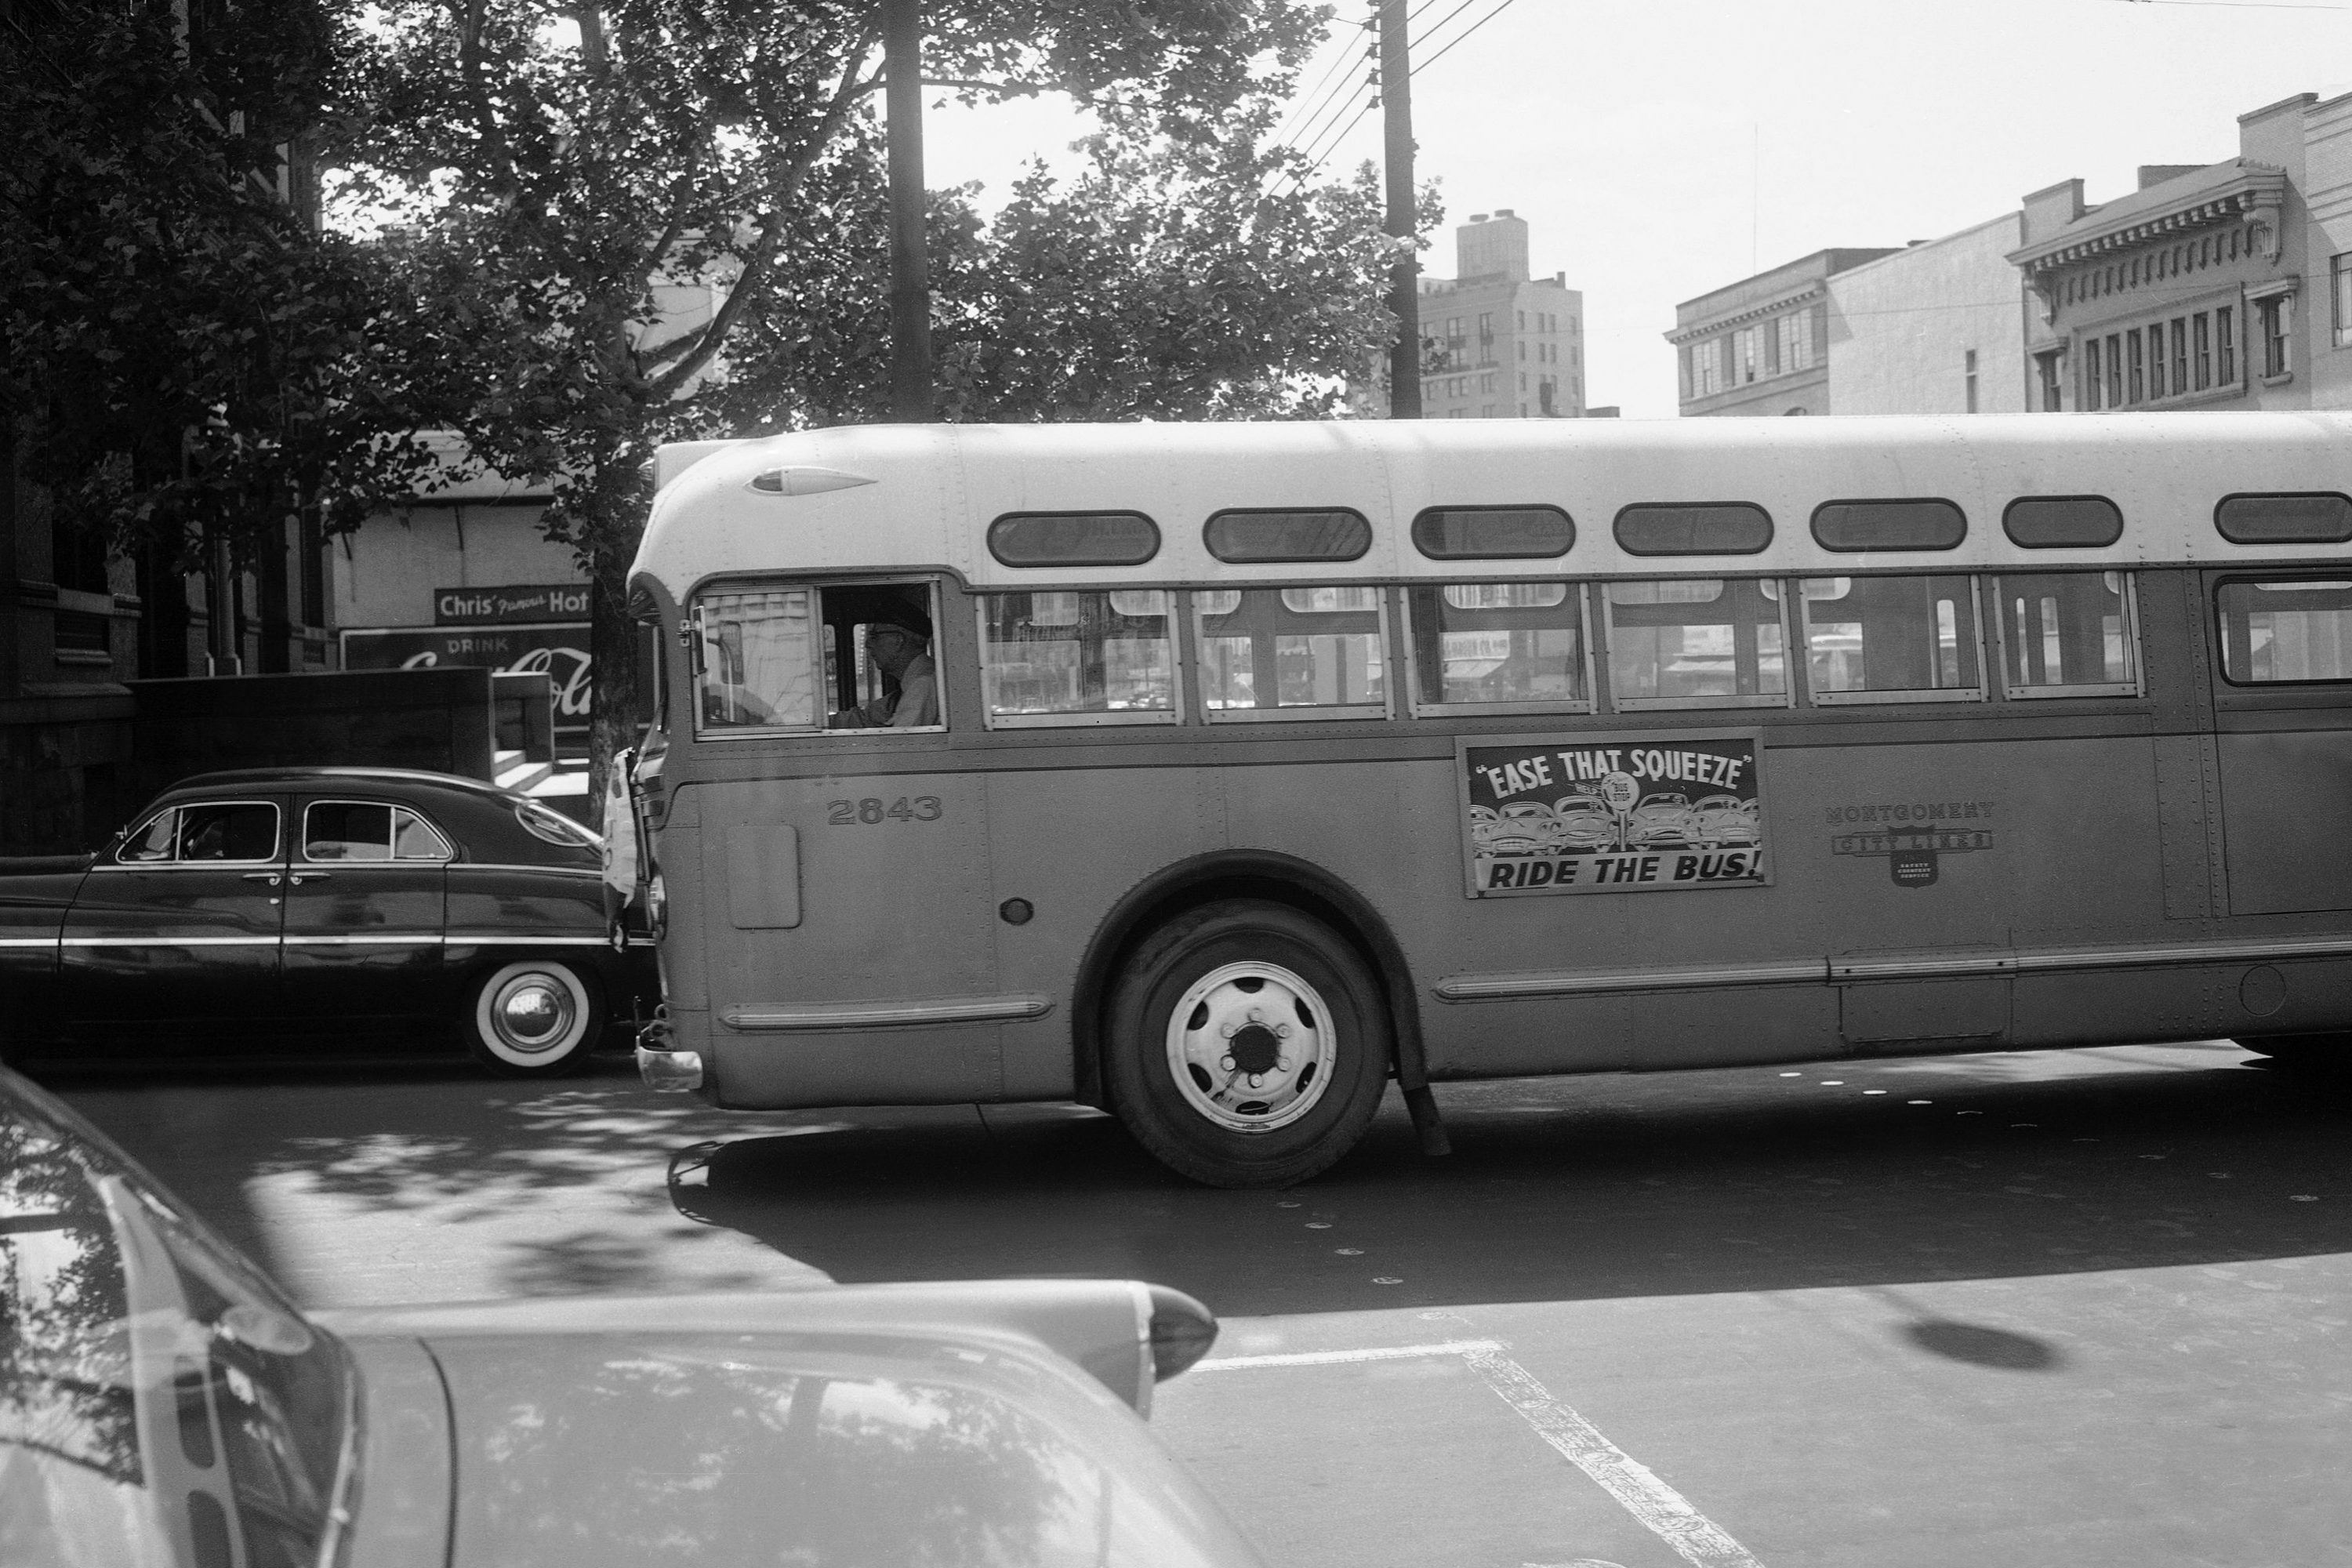 Abus driver is all alone as his empty bus moves through downtown Montgomery, Ala., in April 1956 during the boycott. Georgia Gilmore's cooking helped fund an alternative system of transportation that arose for the city's African-Americans during the boycott